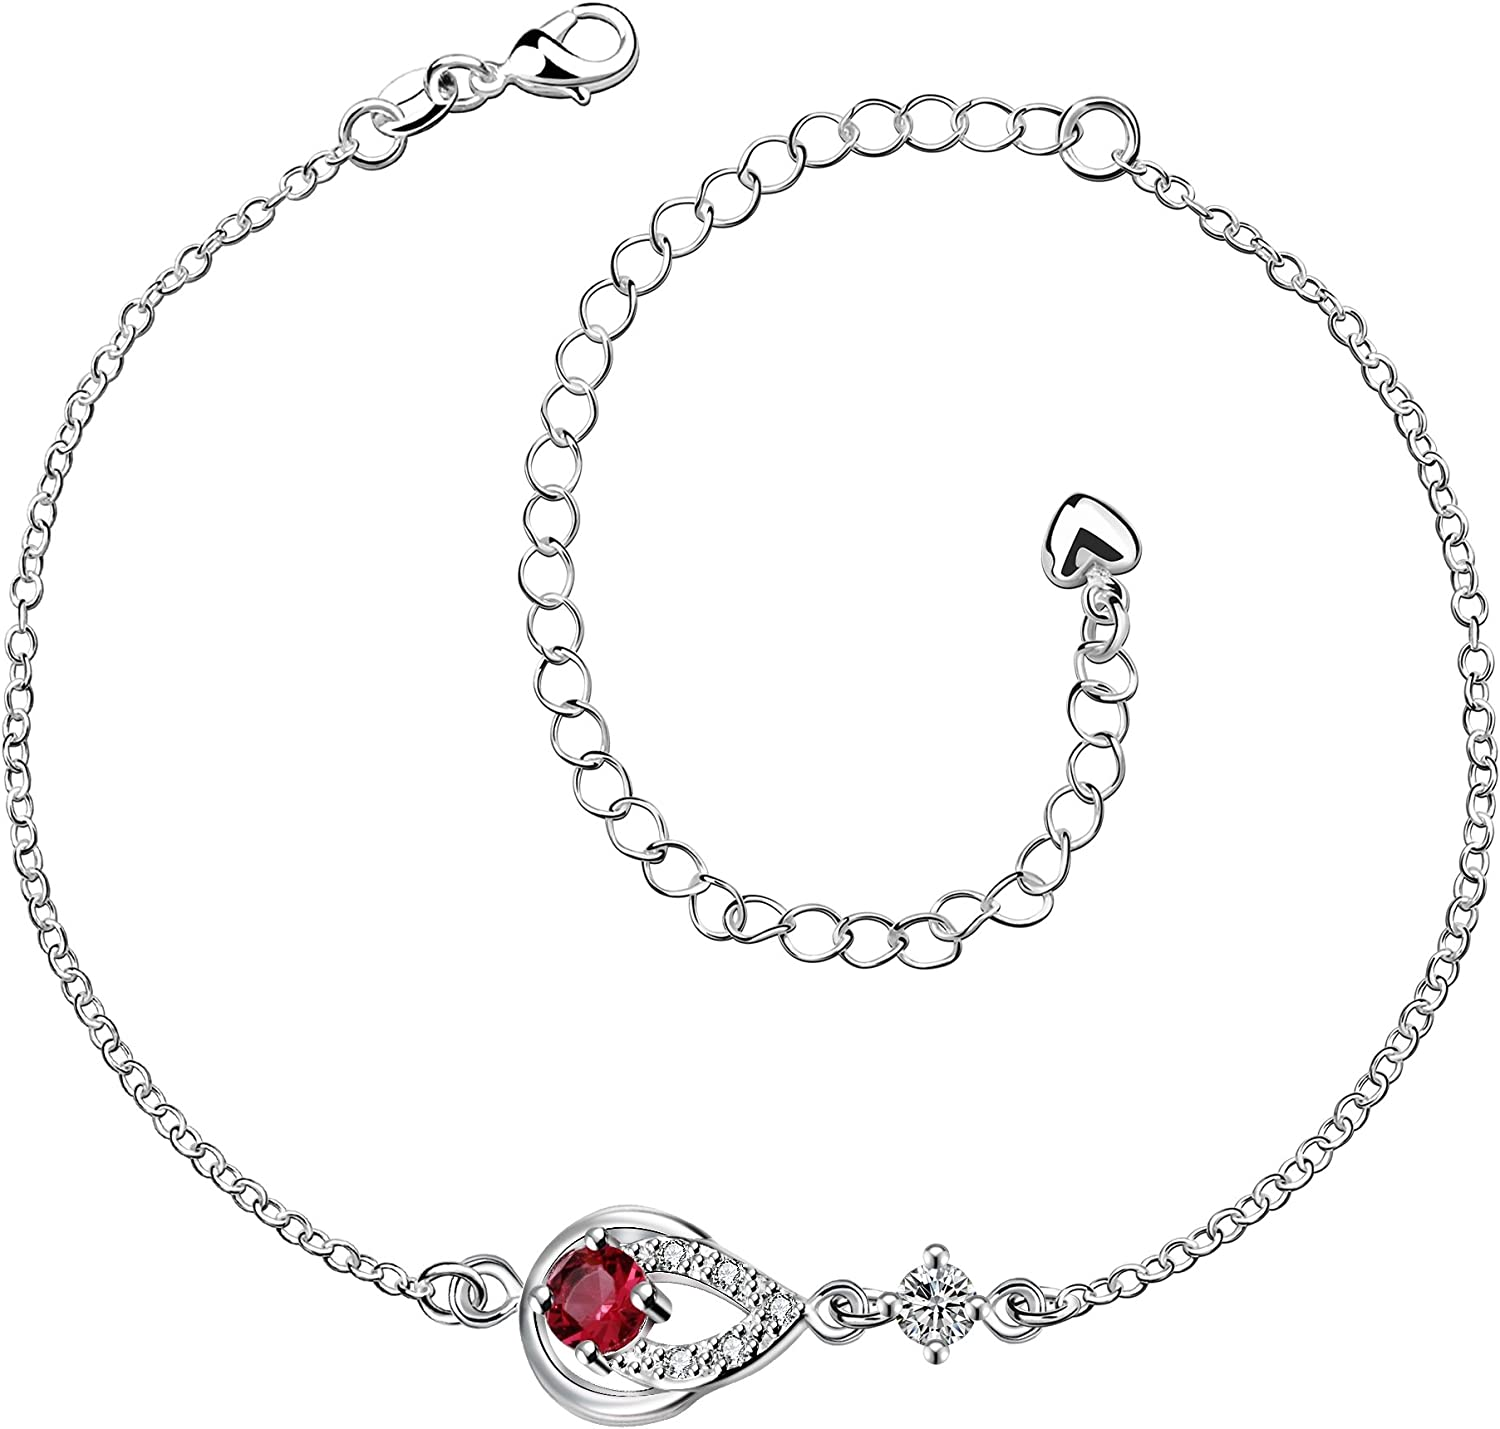 Huangiao Women's 925 Silver Chain 67% OFF of Super sale period limited fixed price Pierced Drop Water Personality